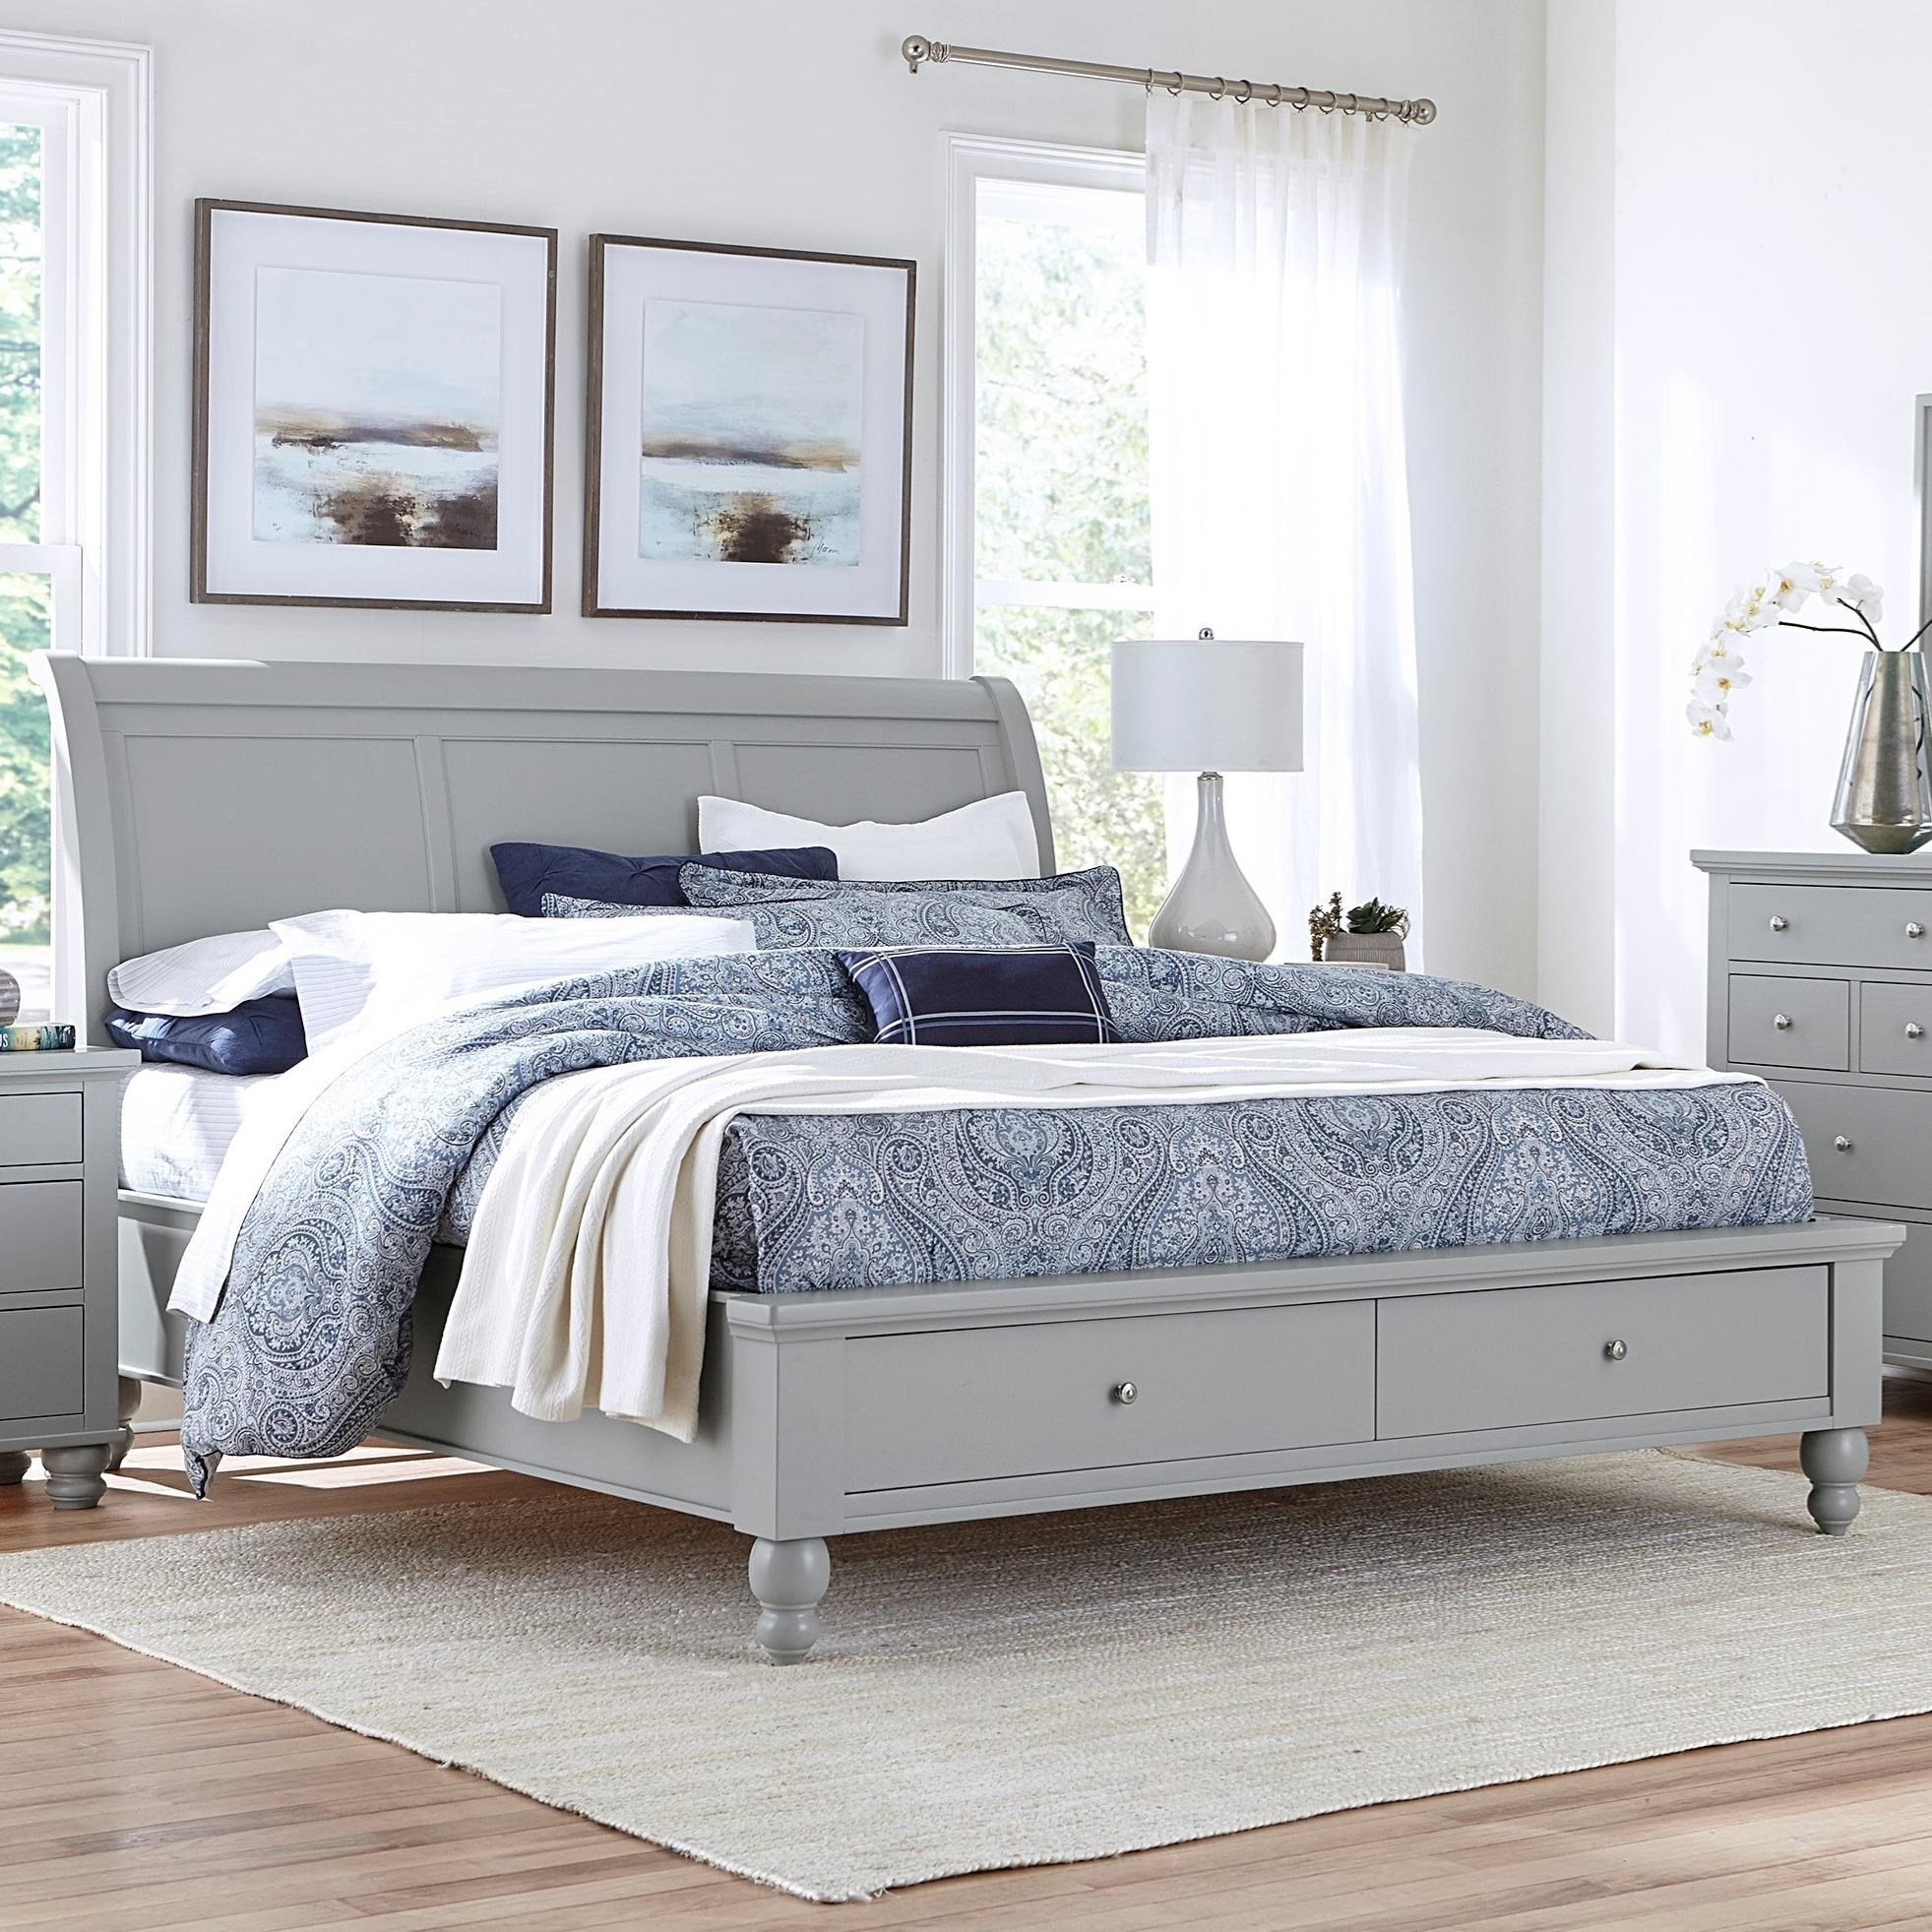 Cambridge California King Storage Sleigh Bed by Aspenhome at Walker's Furniture